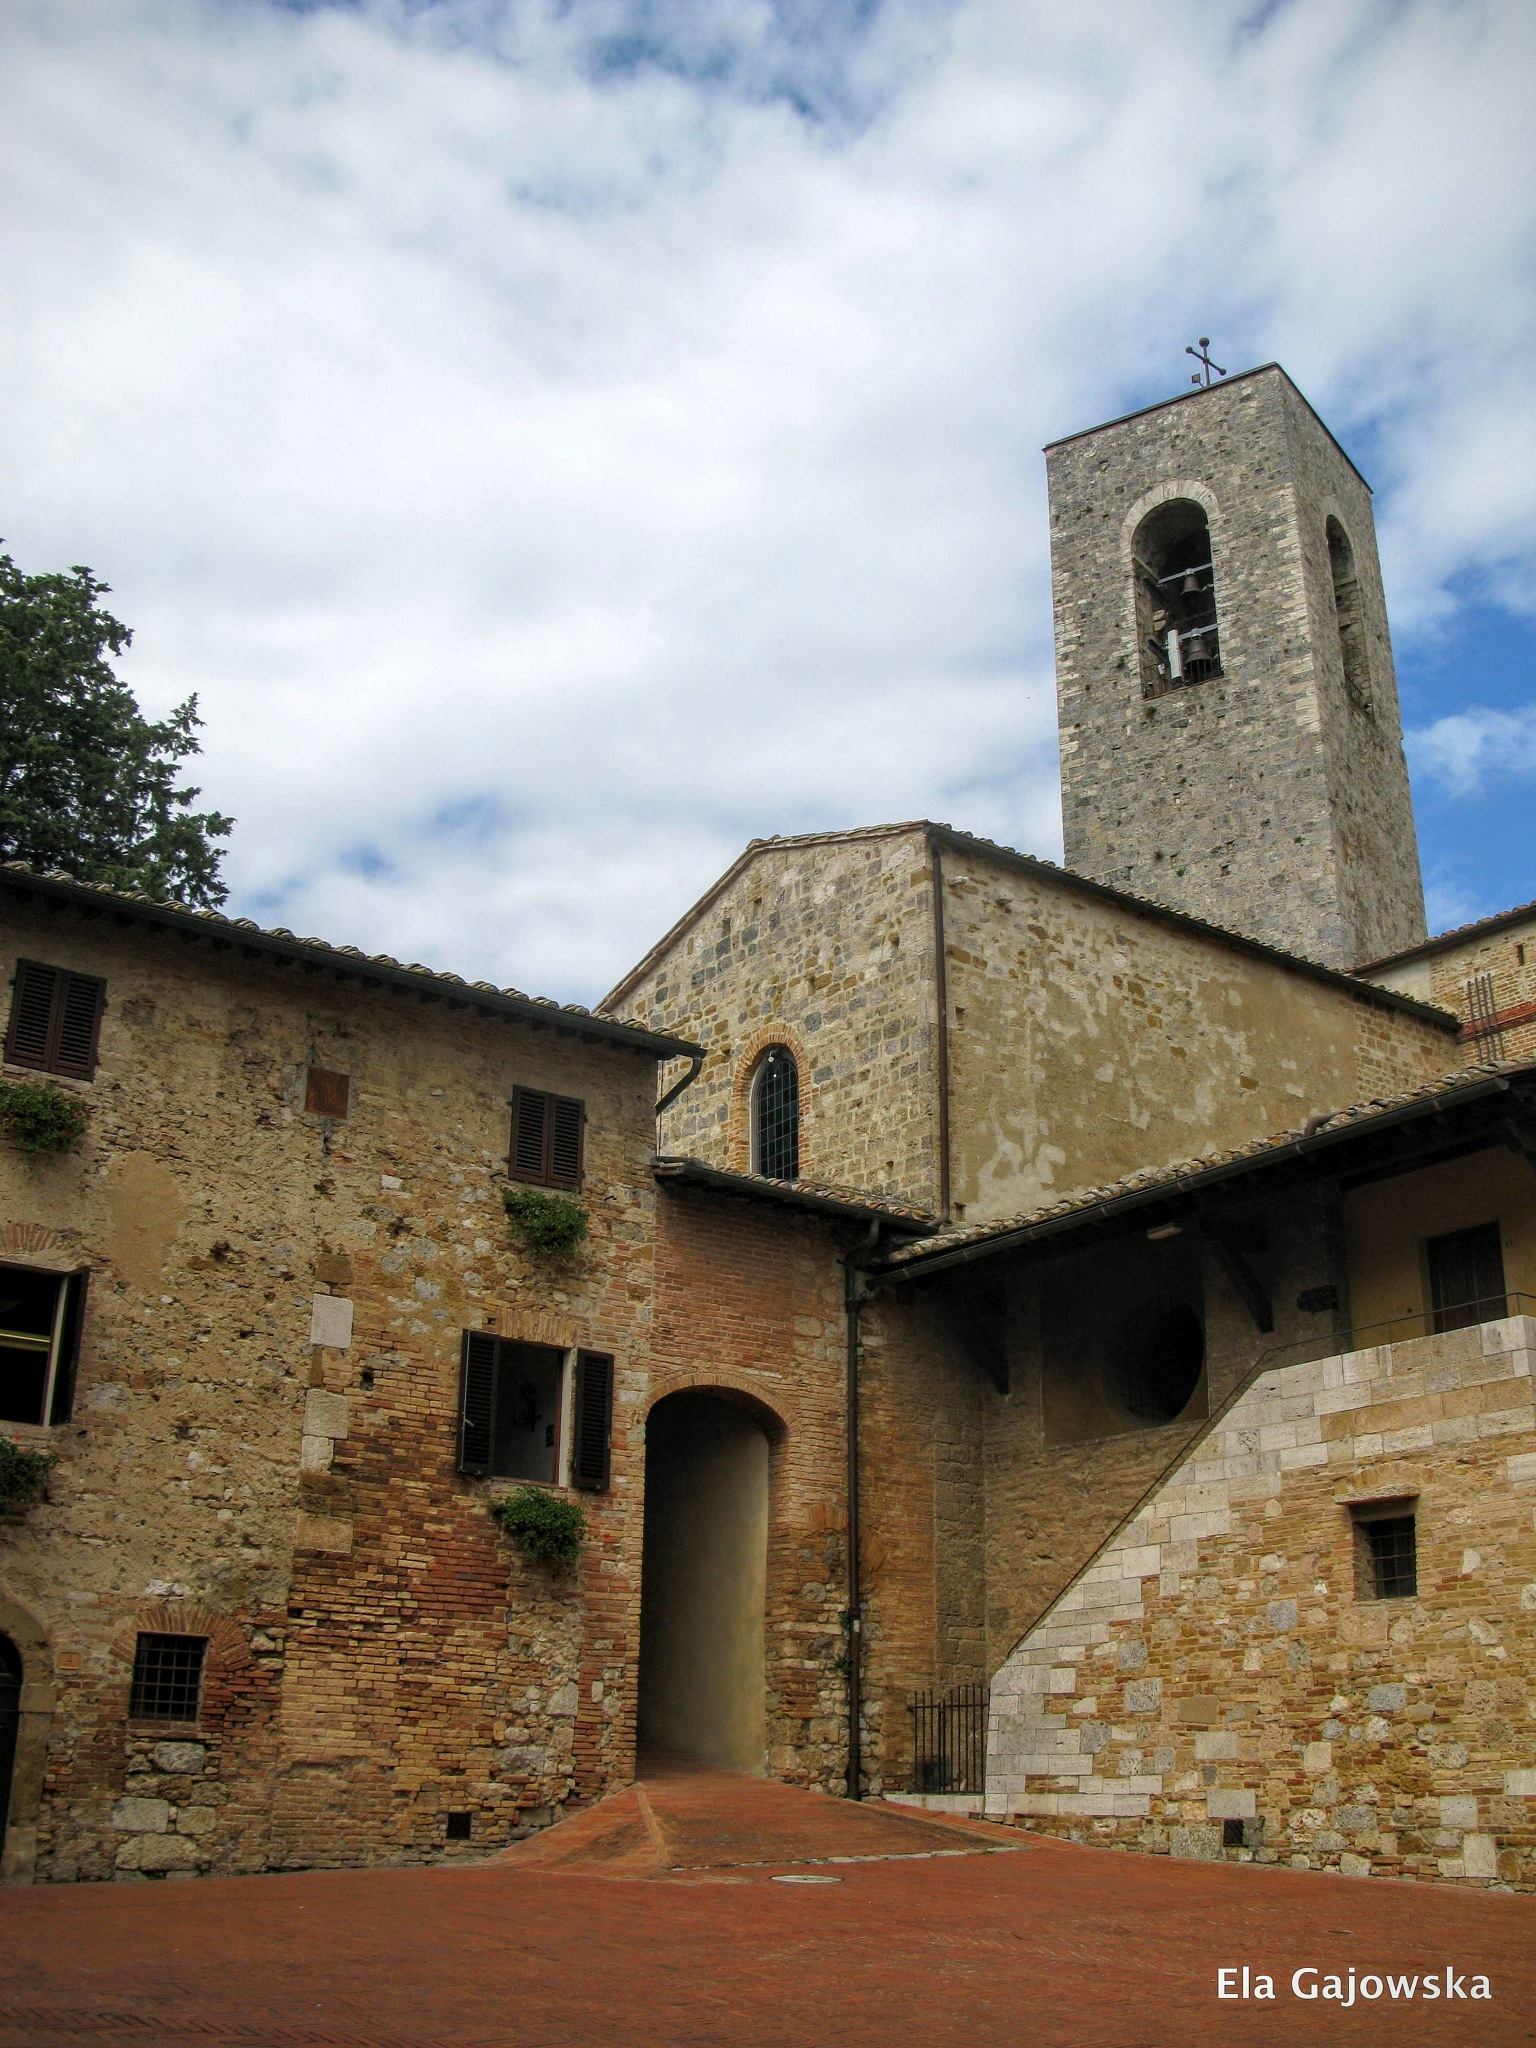 In the hill, medieval town of San Gimignano by Ela Gajowska